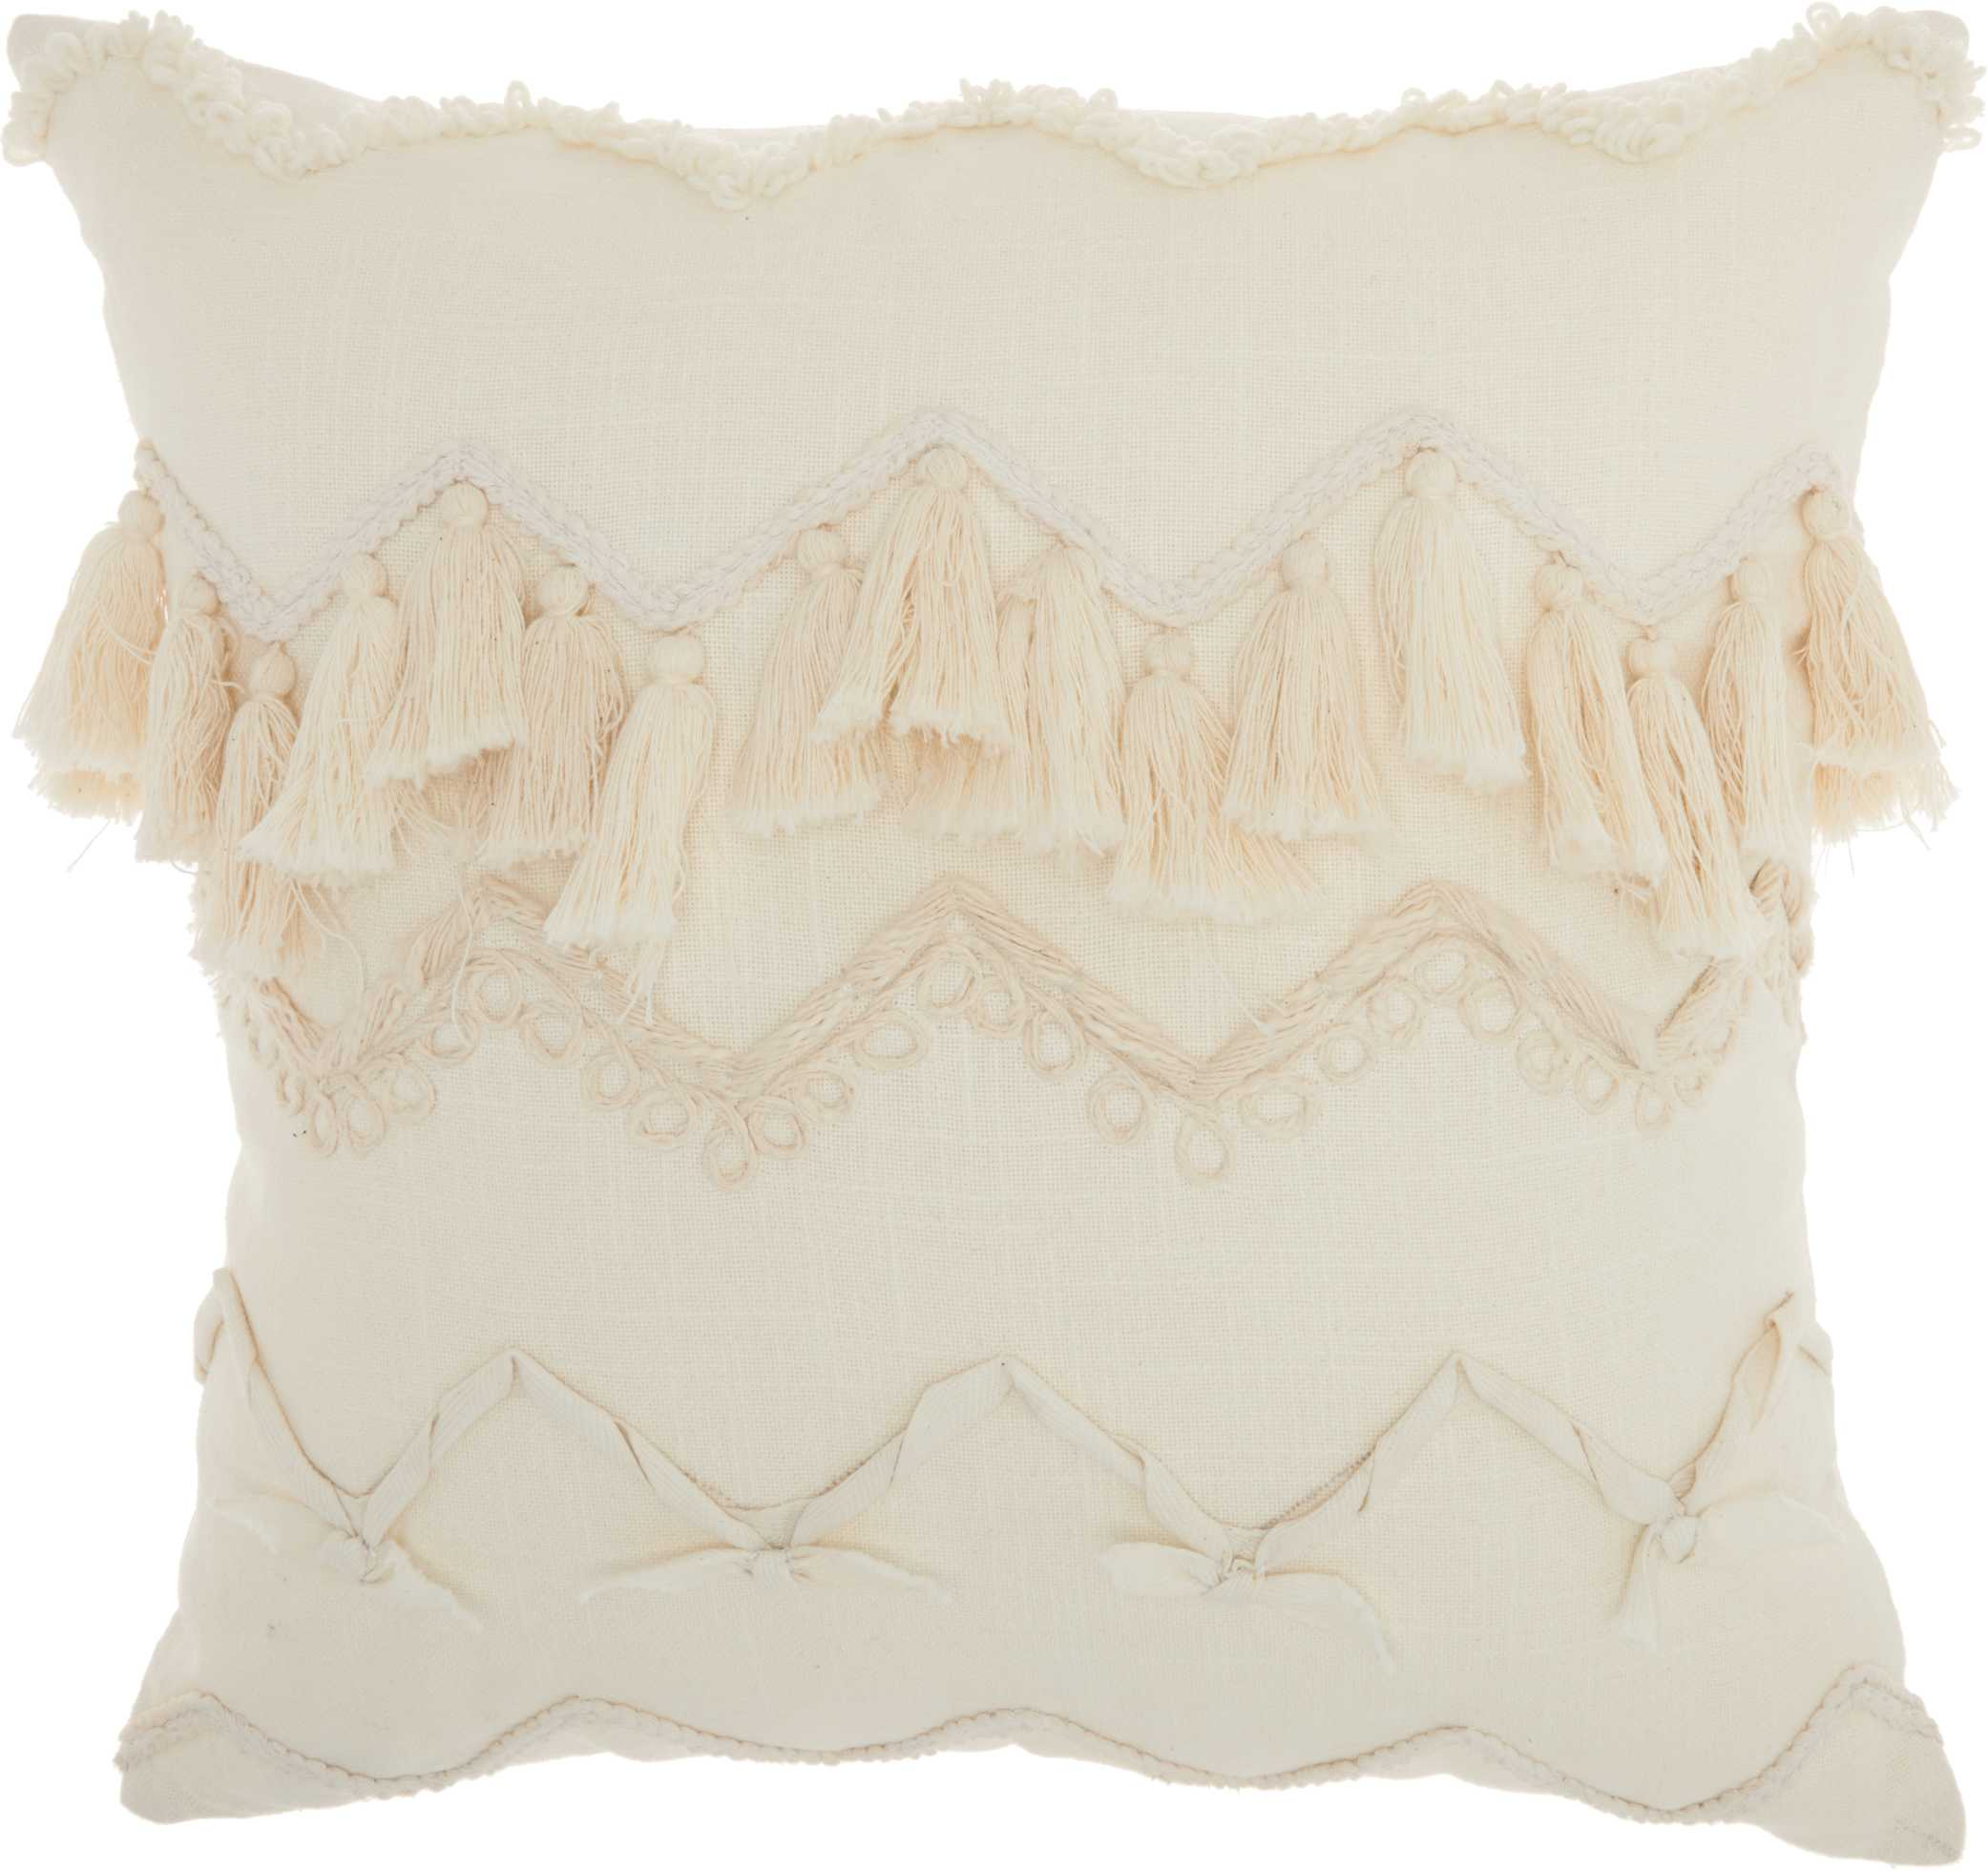 Nourison Life Styles Chevron Textures Ivory Throw Pillow